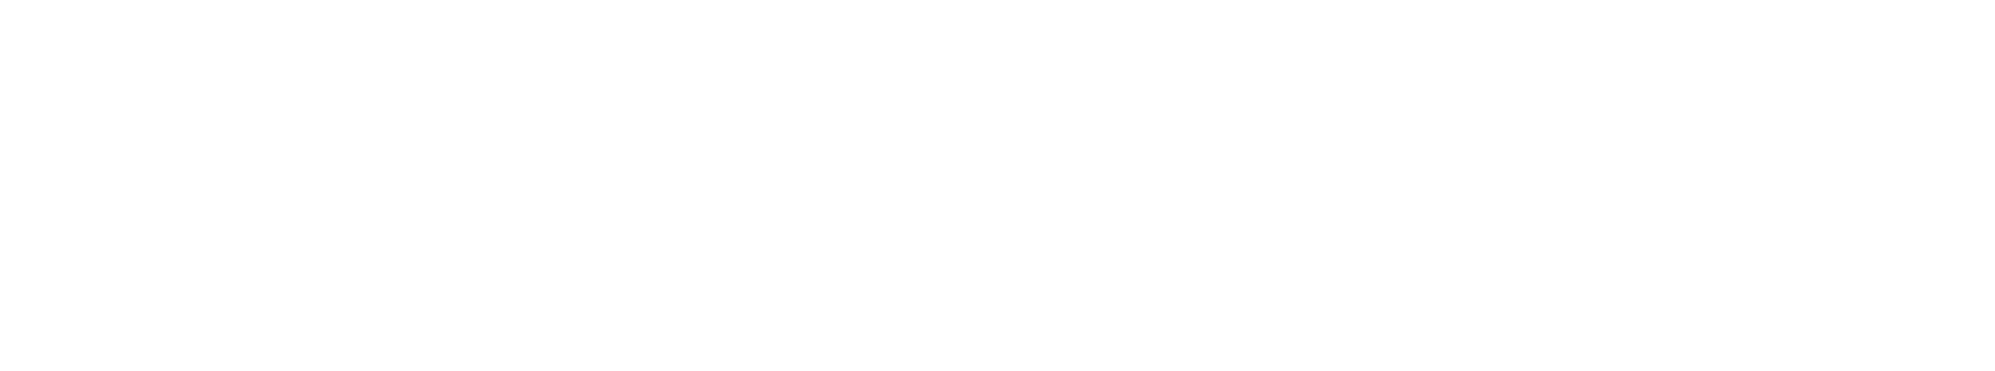 hight resolution of mcmillan electric